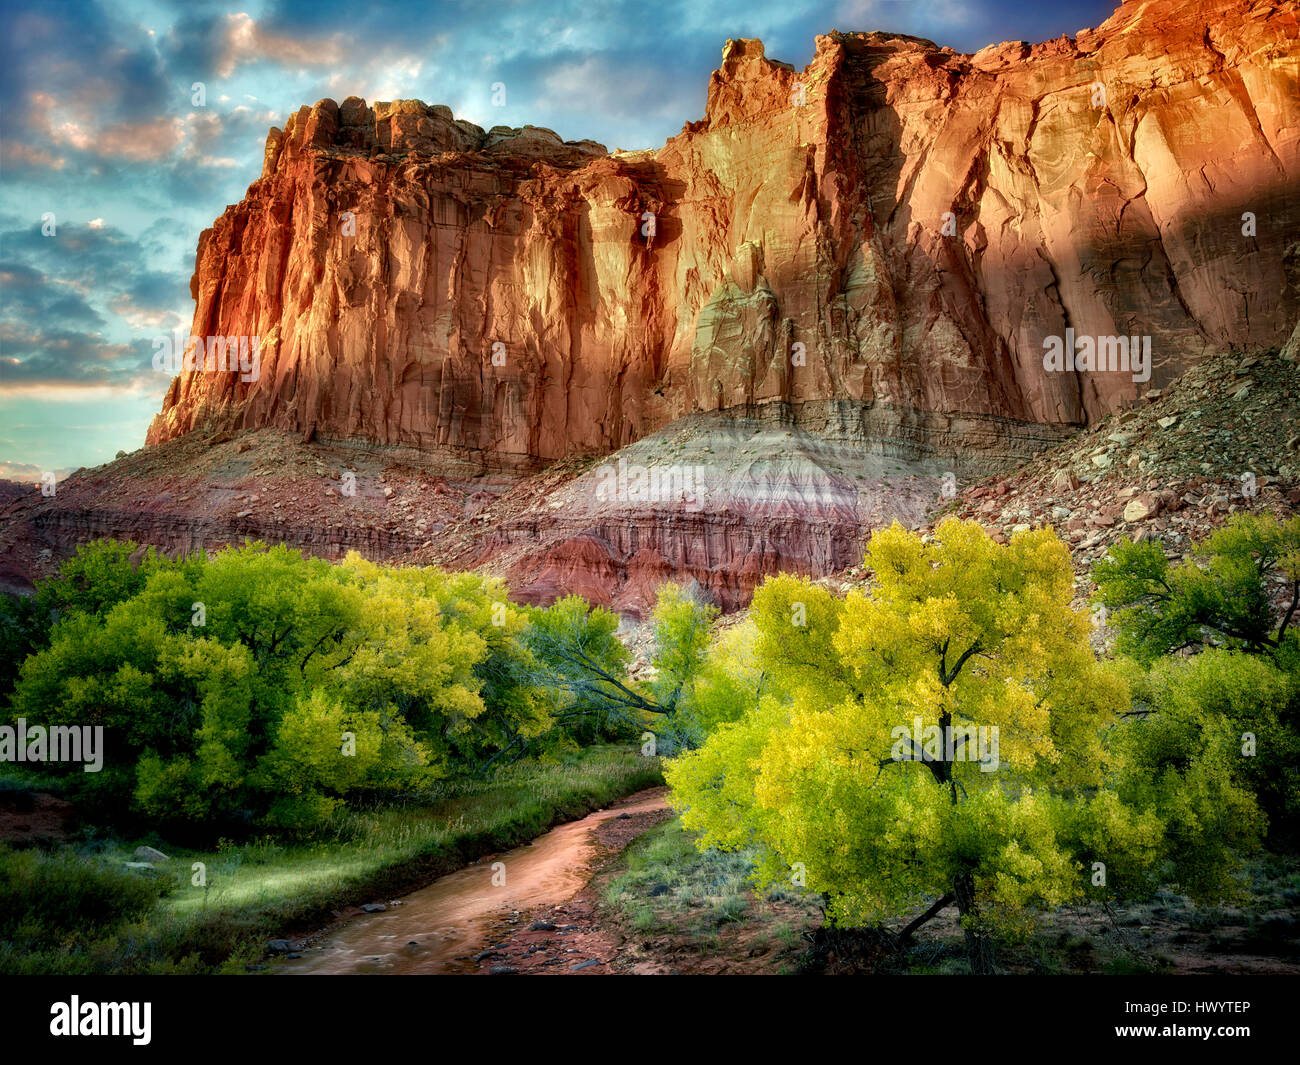 Fall colored Cottonwood Trees and rock formations. Capitol Reef National Park, Utah - Stock Image